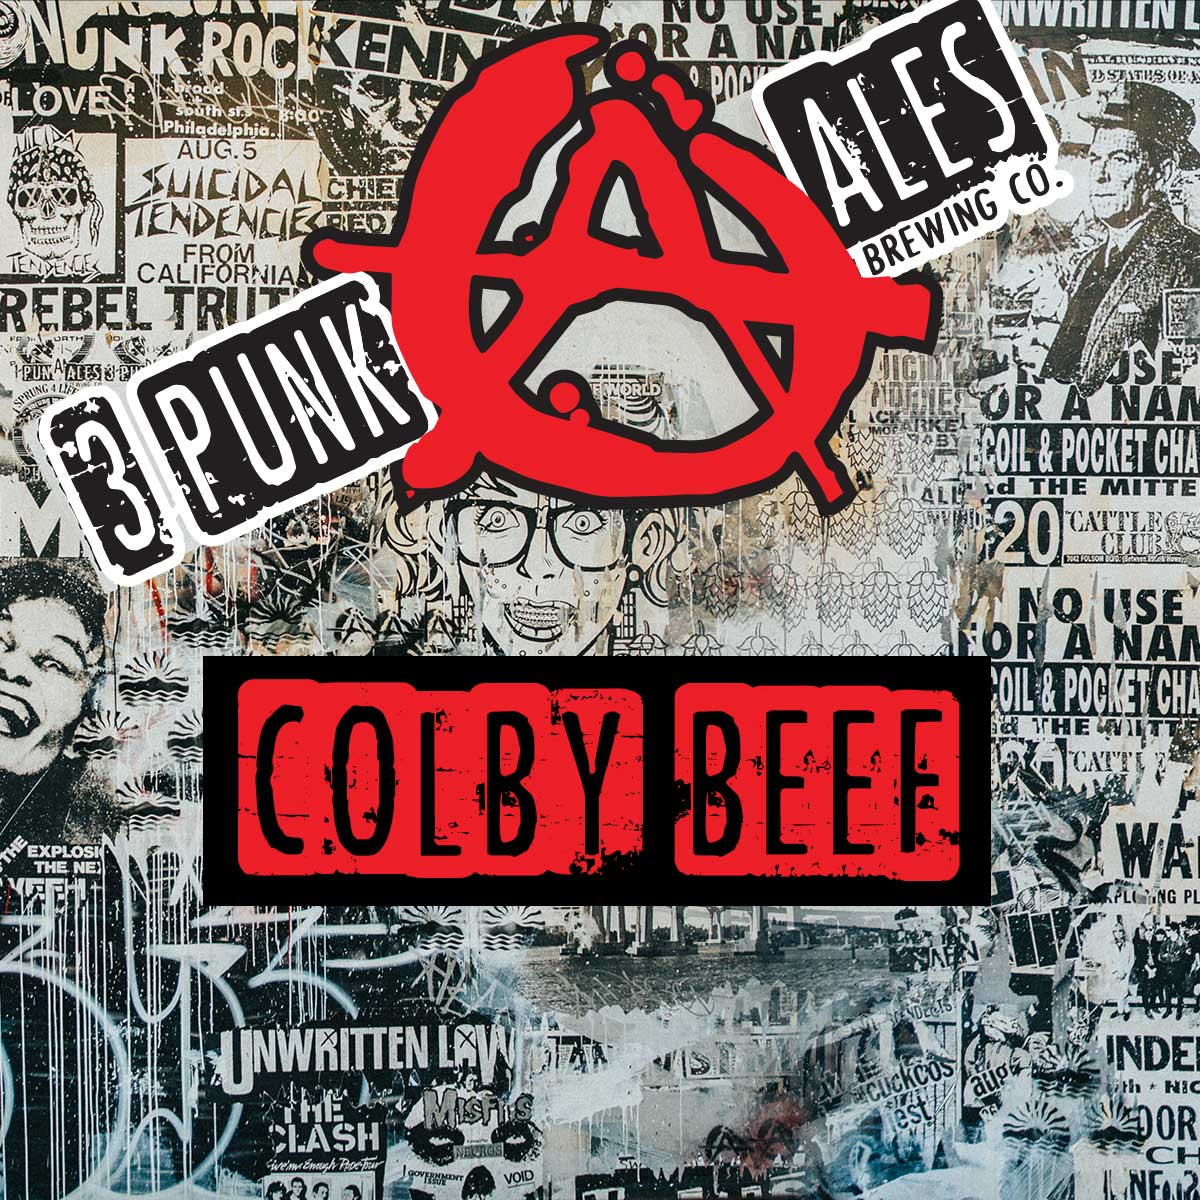 Colby Beef